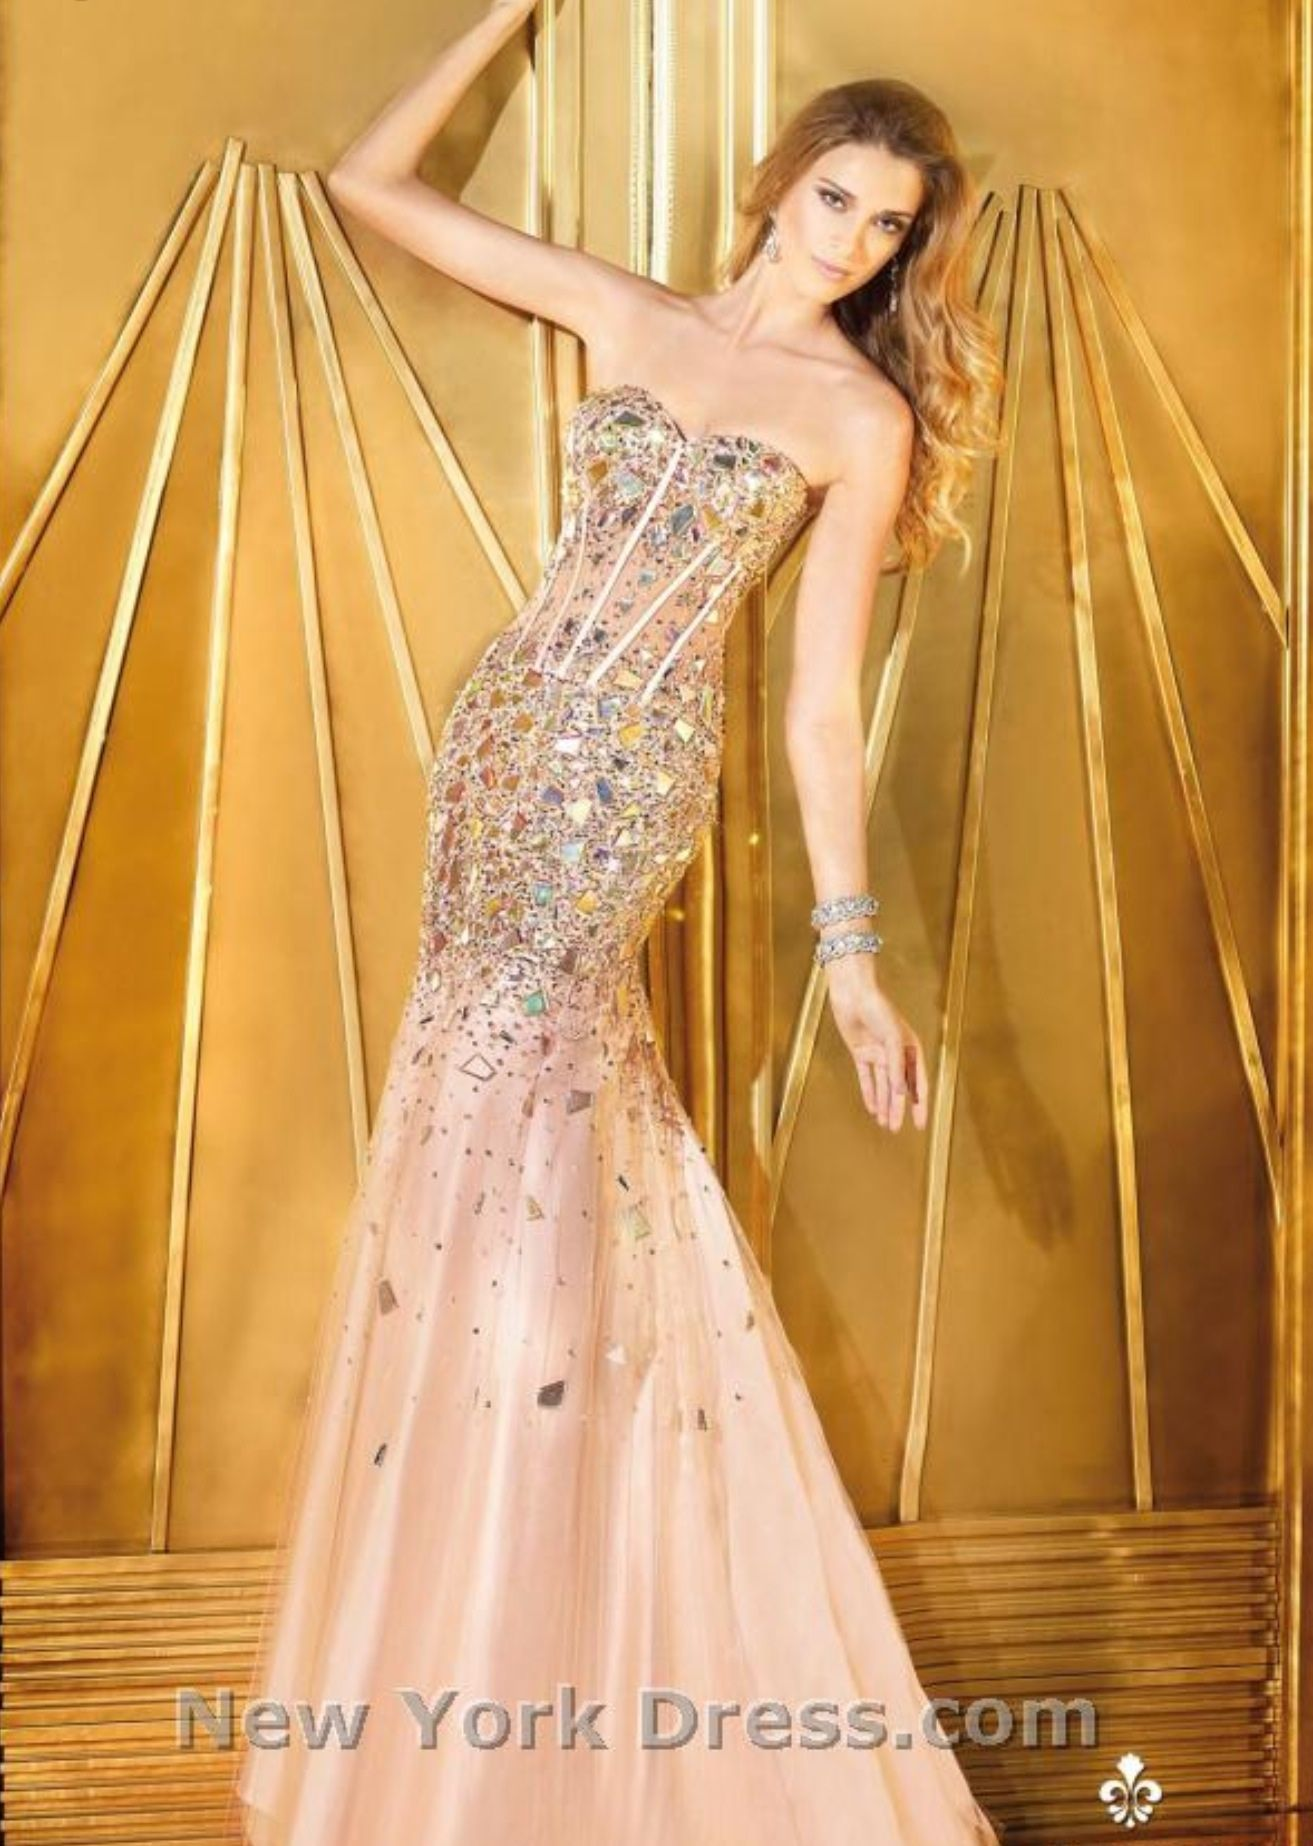 We fell in love with this fish tail dress the sparkles the shape